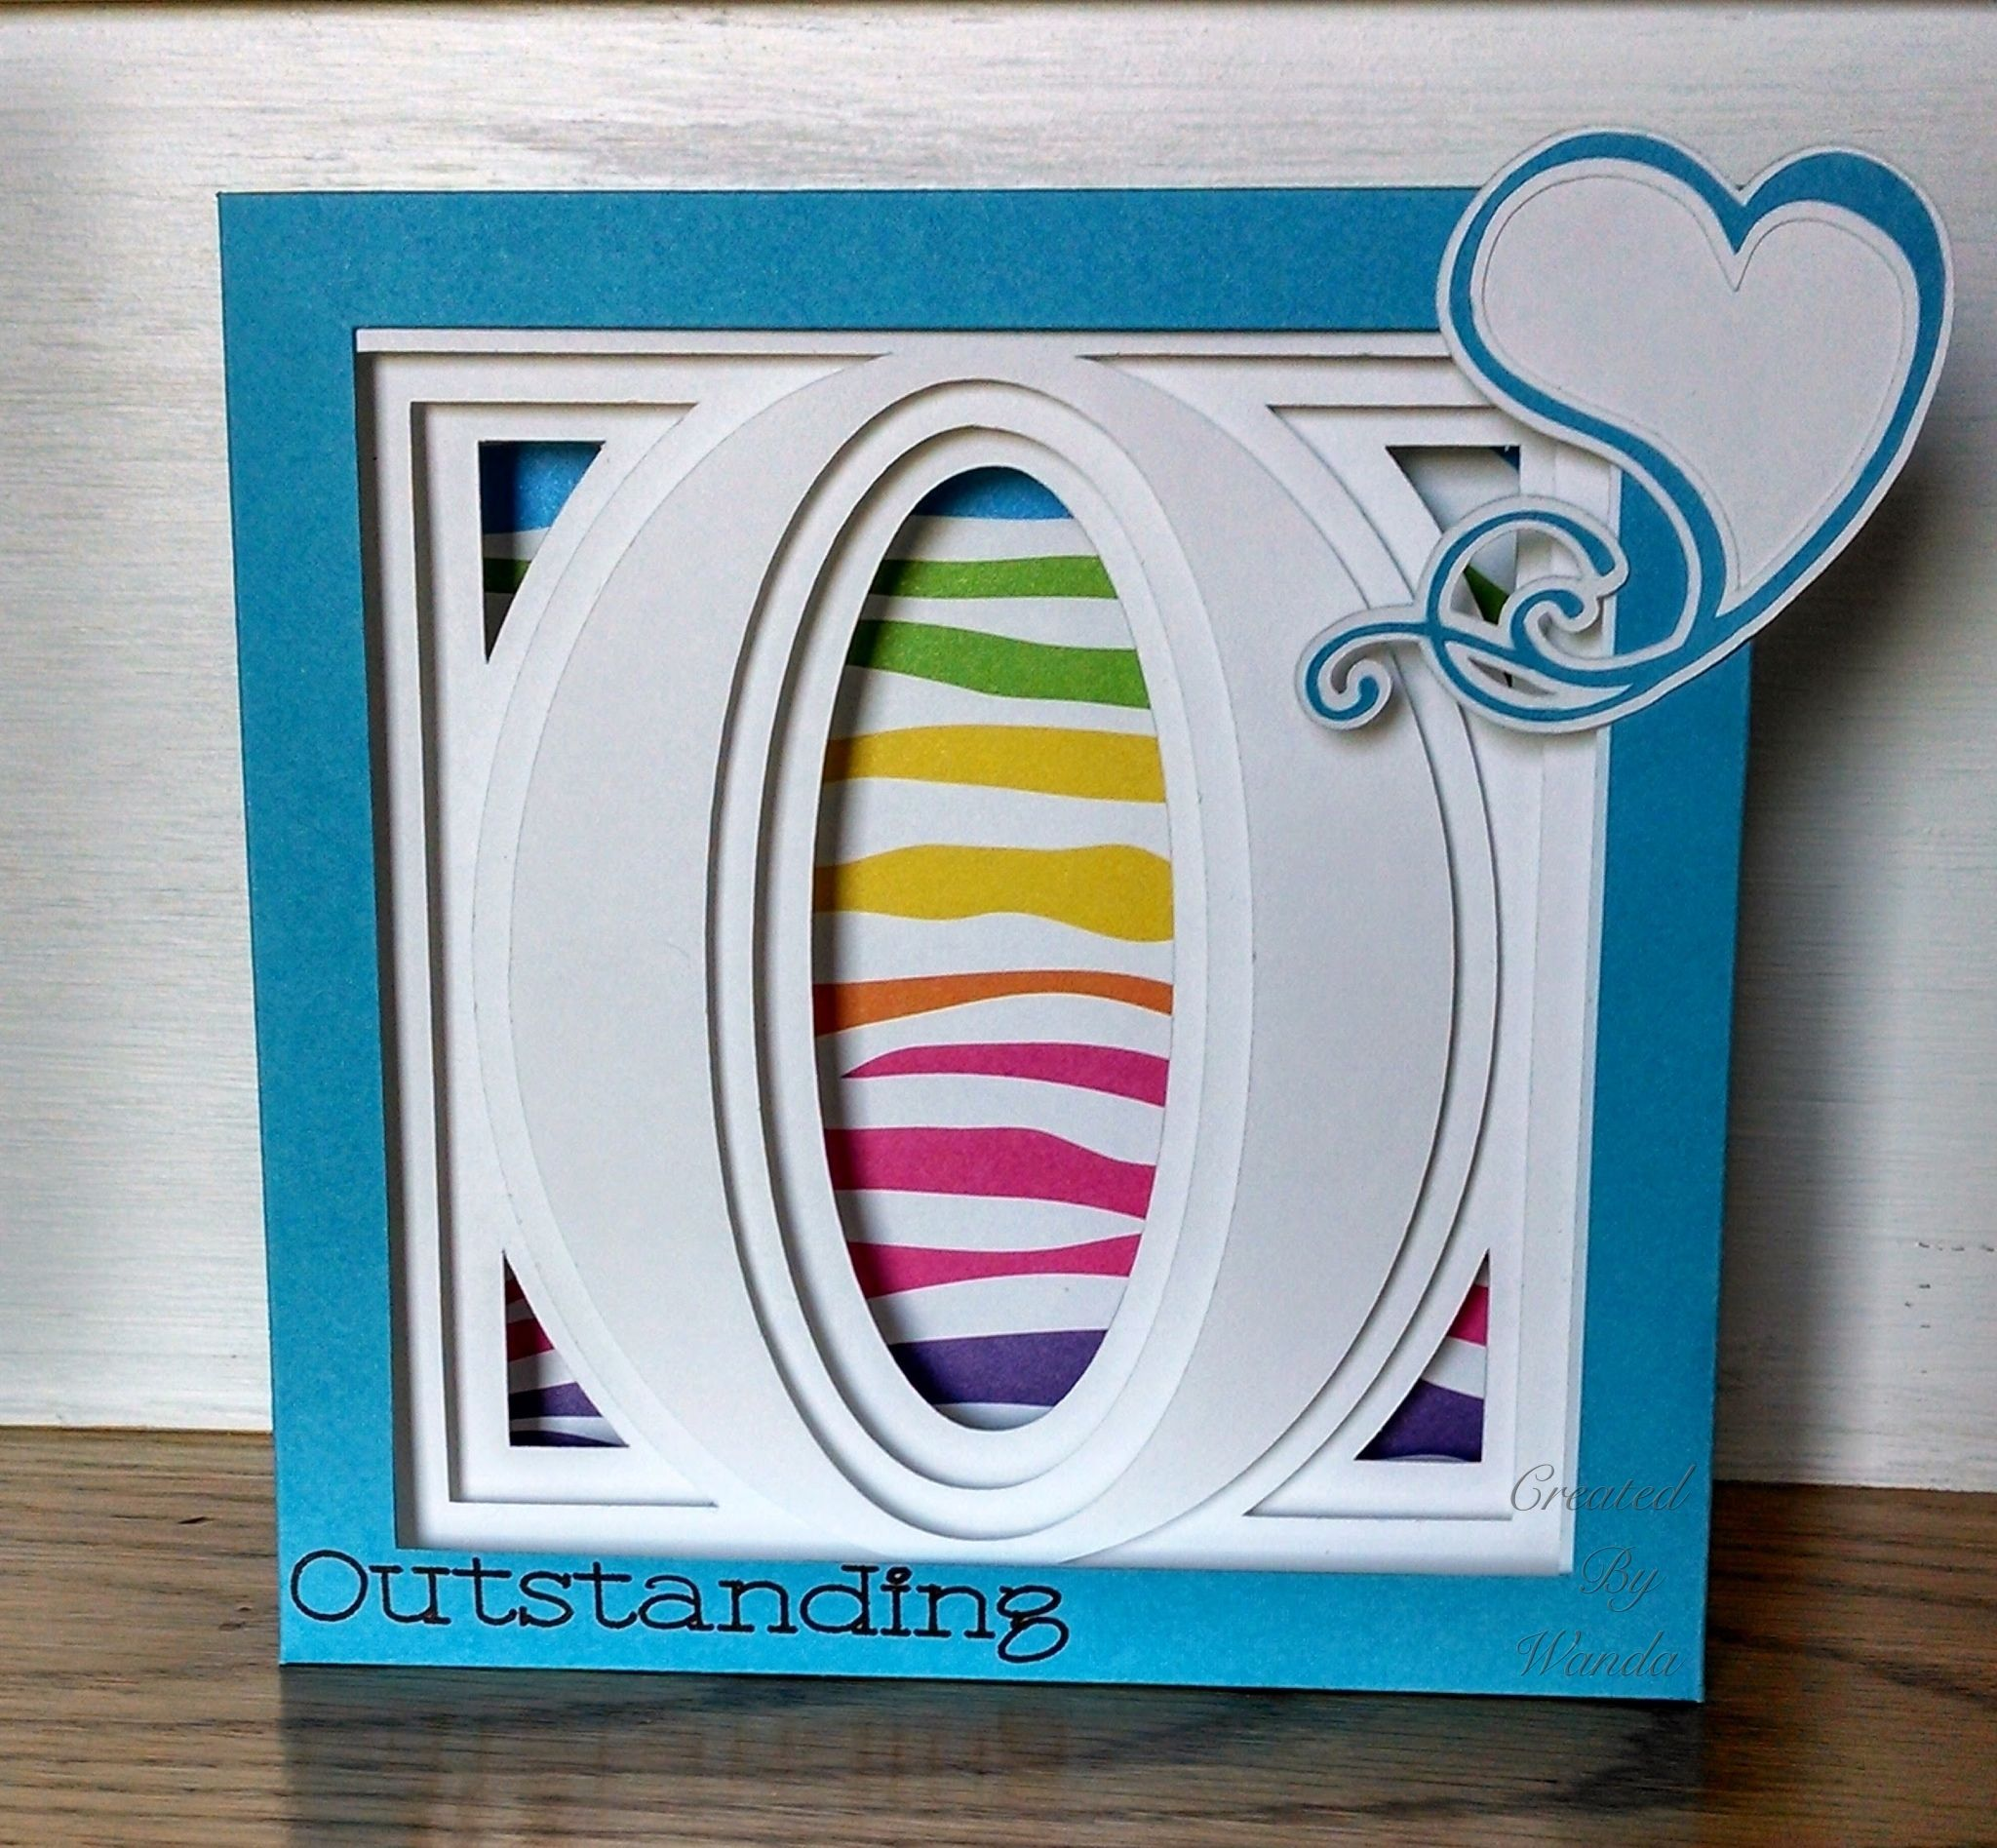 Using cricut design space and my explore I made this 3D alphabet letter box from 3D Cuts